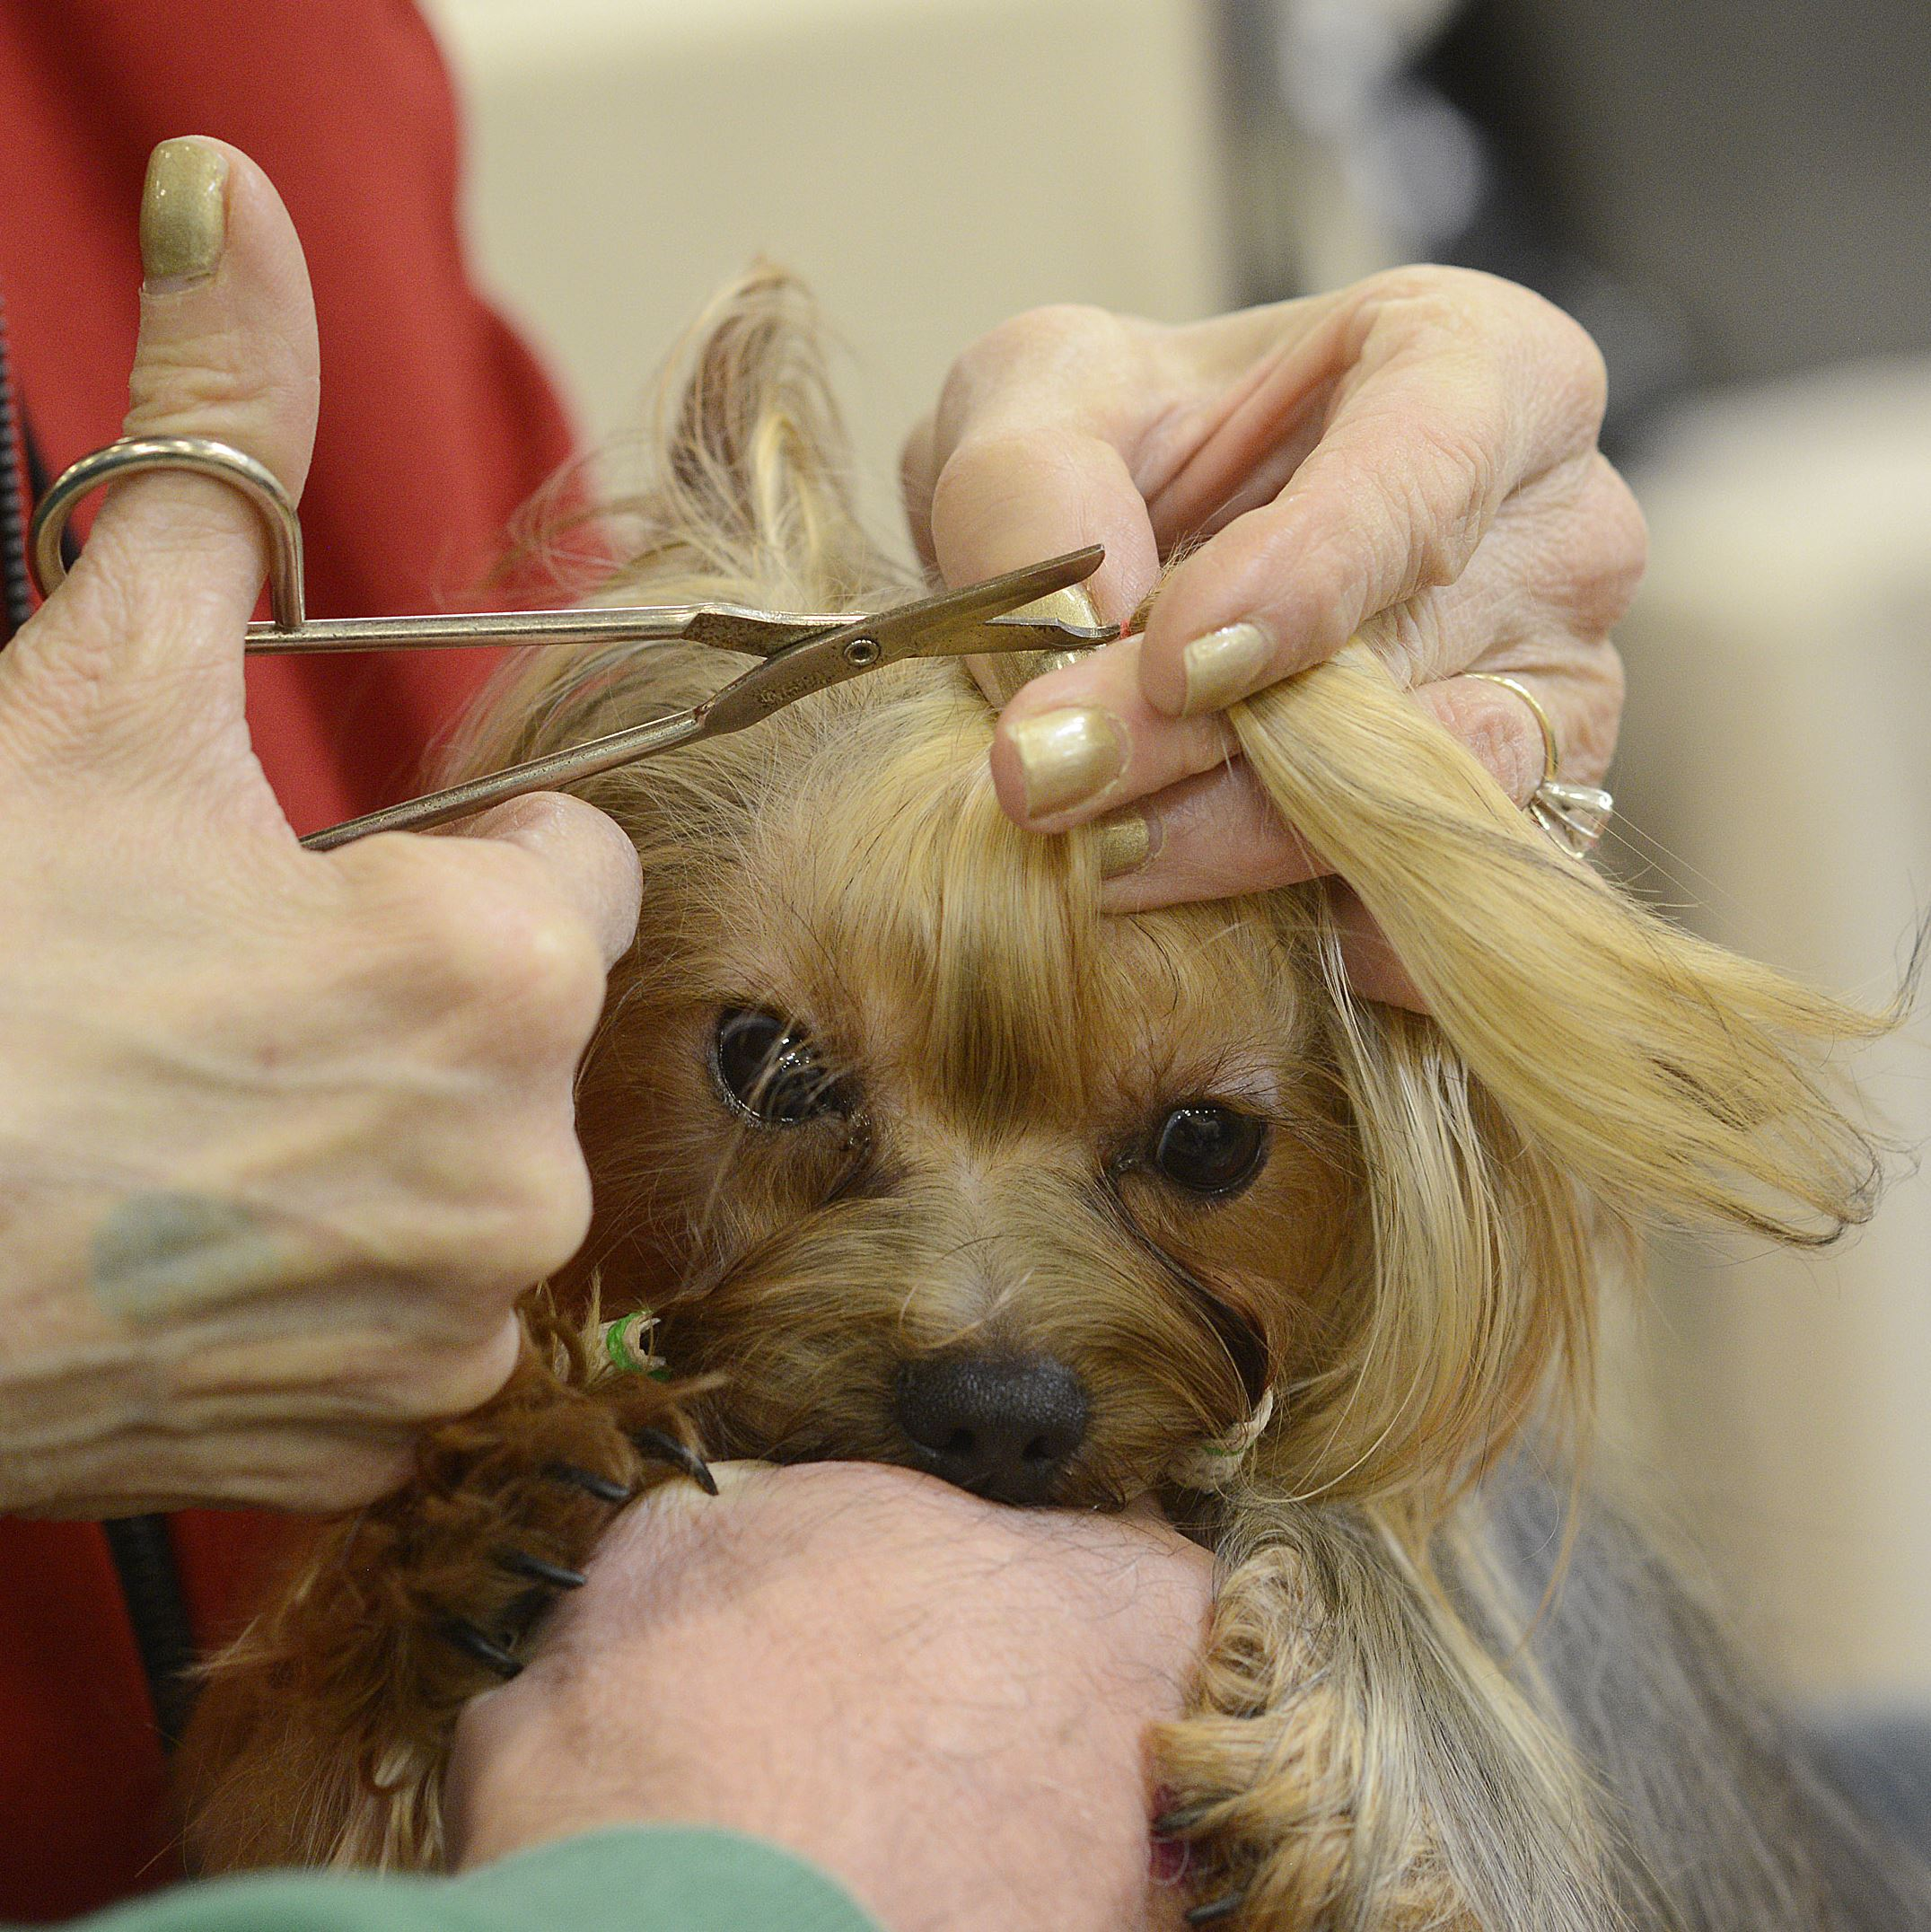 20170402lrpadogshow10-8 Maribeth Mitchell of Shaler grooms Sticky Fingers McGuire, a 14-month old Yorkshire Terrier.